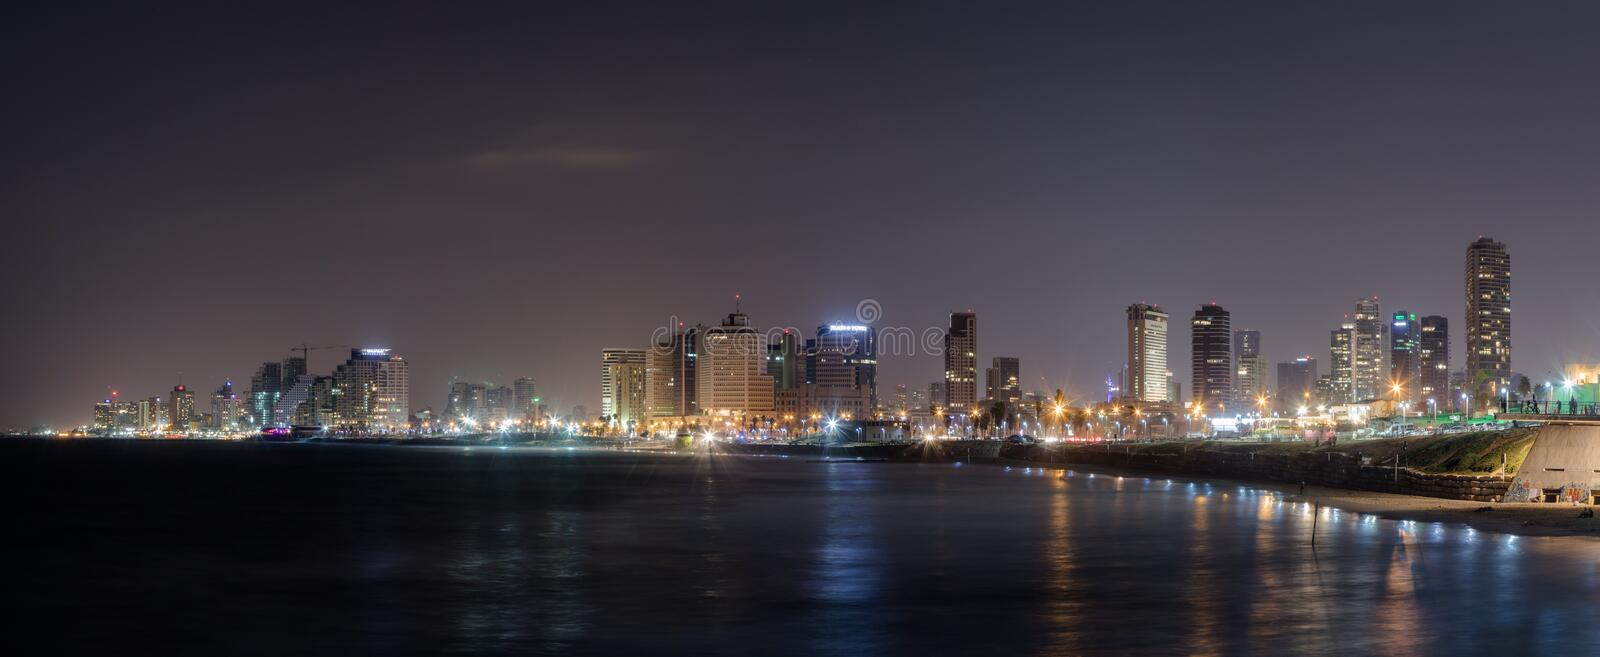 Panoramic view of Tel Aviv, city and bay at night. View from promenade of Old City Yafo, Israel stock images